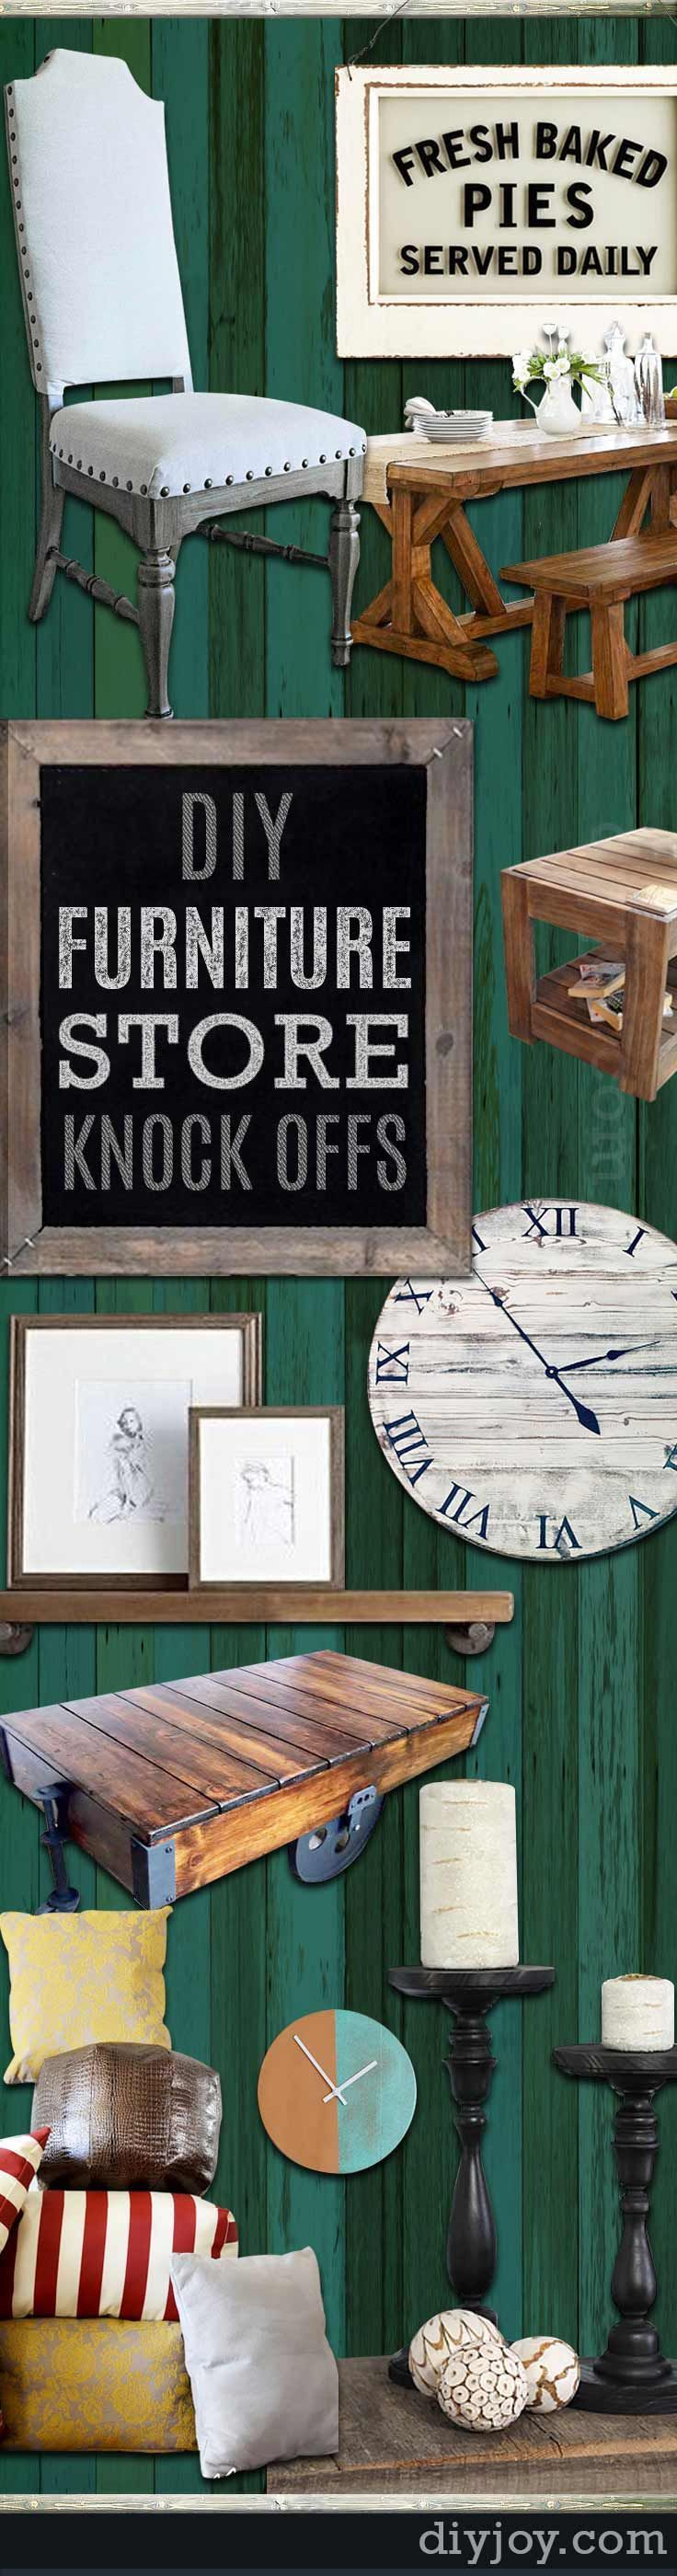 52 incredible diy furniture store knock offs - West Elm Owned By Pottery Barn